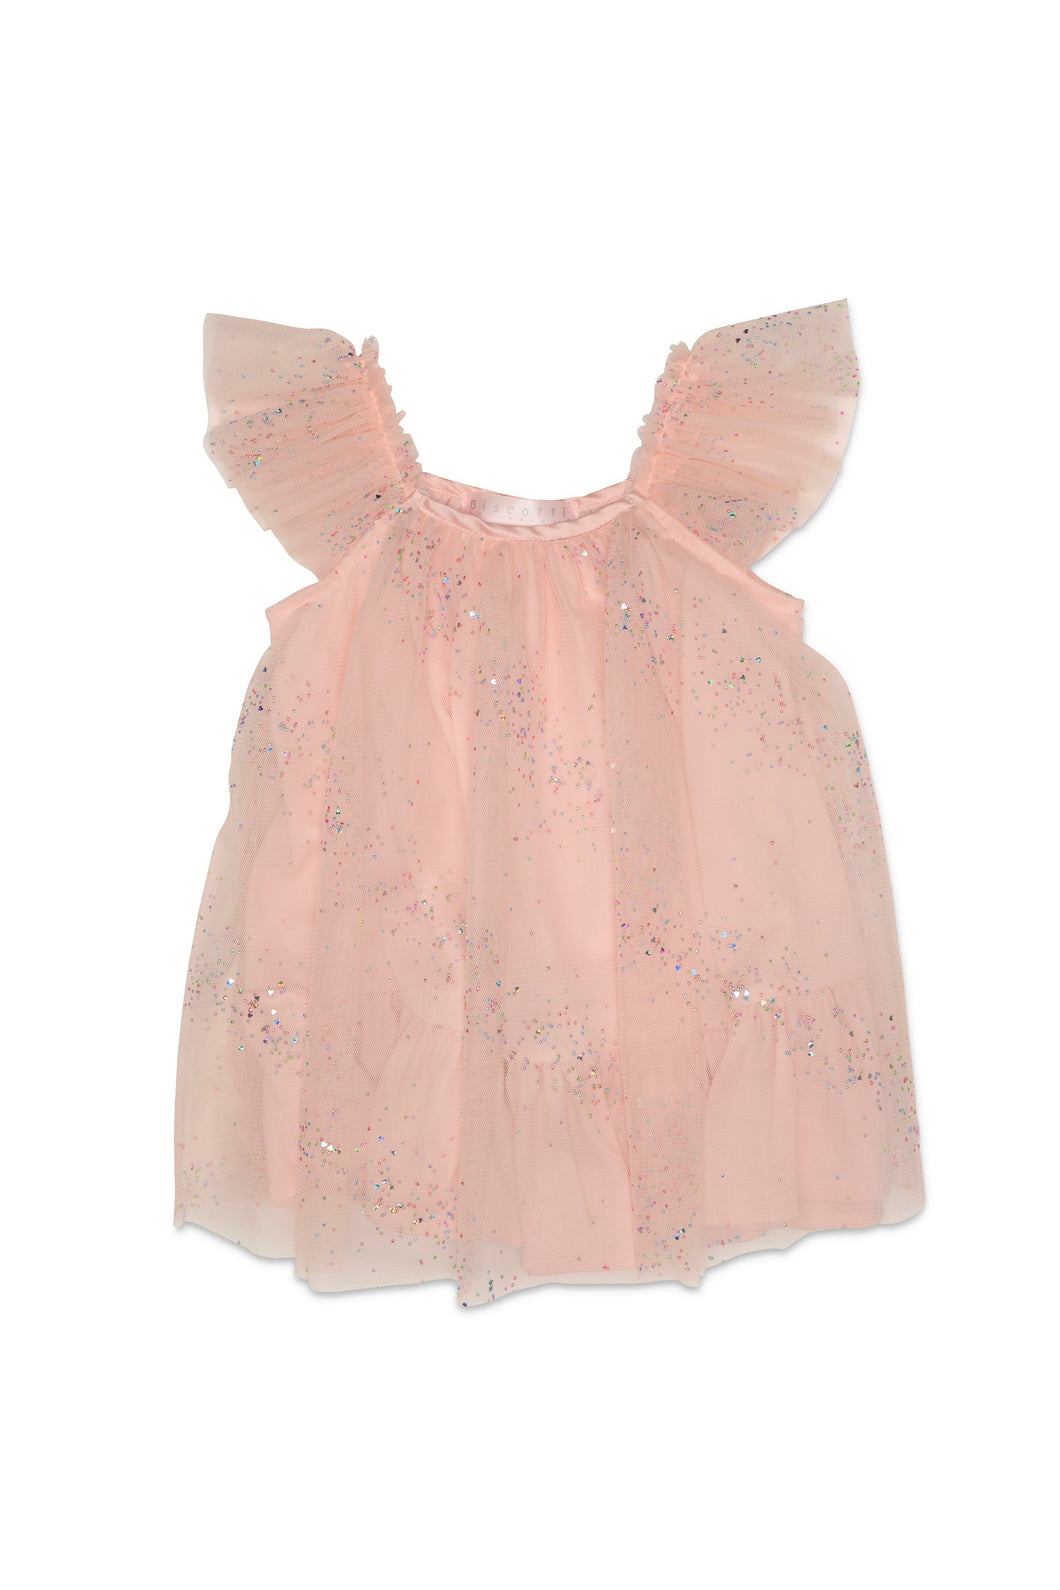 Pink Netting Dress by Biscotti (Toddler)